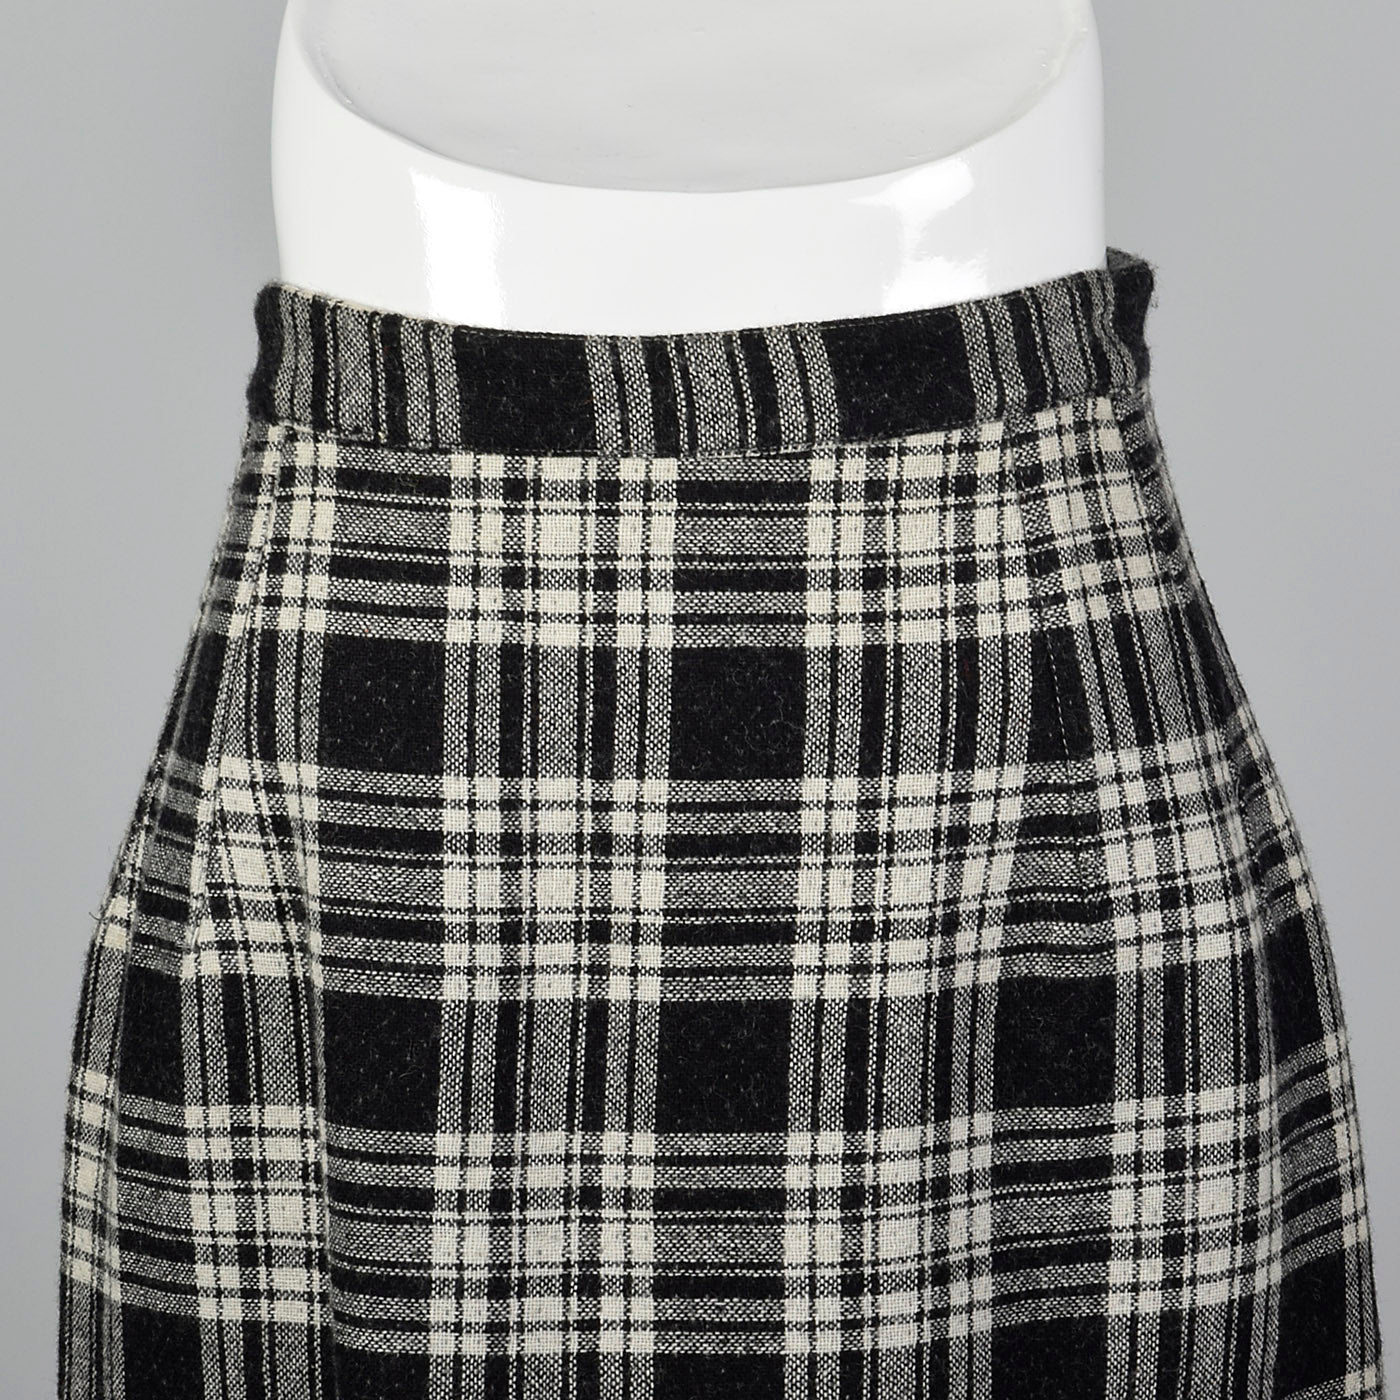 1950s Reversible Pencil Skirt in Gray and Black Plaid